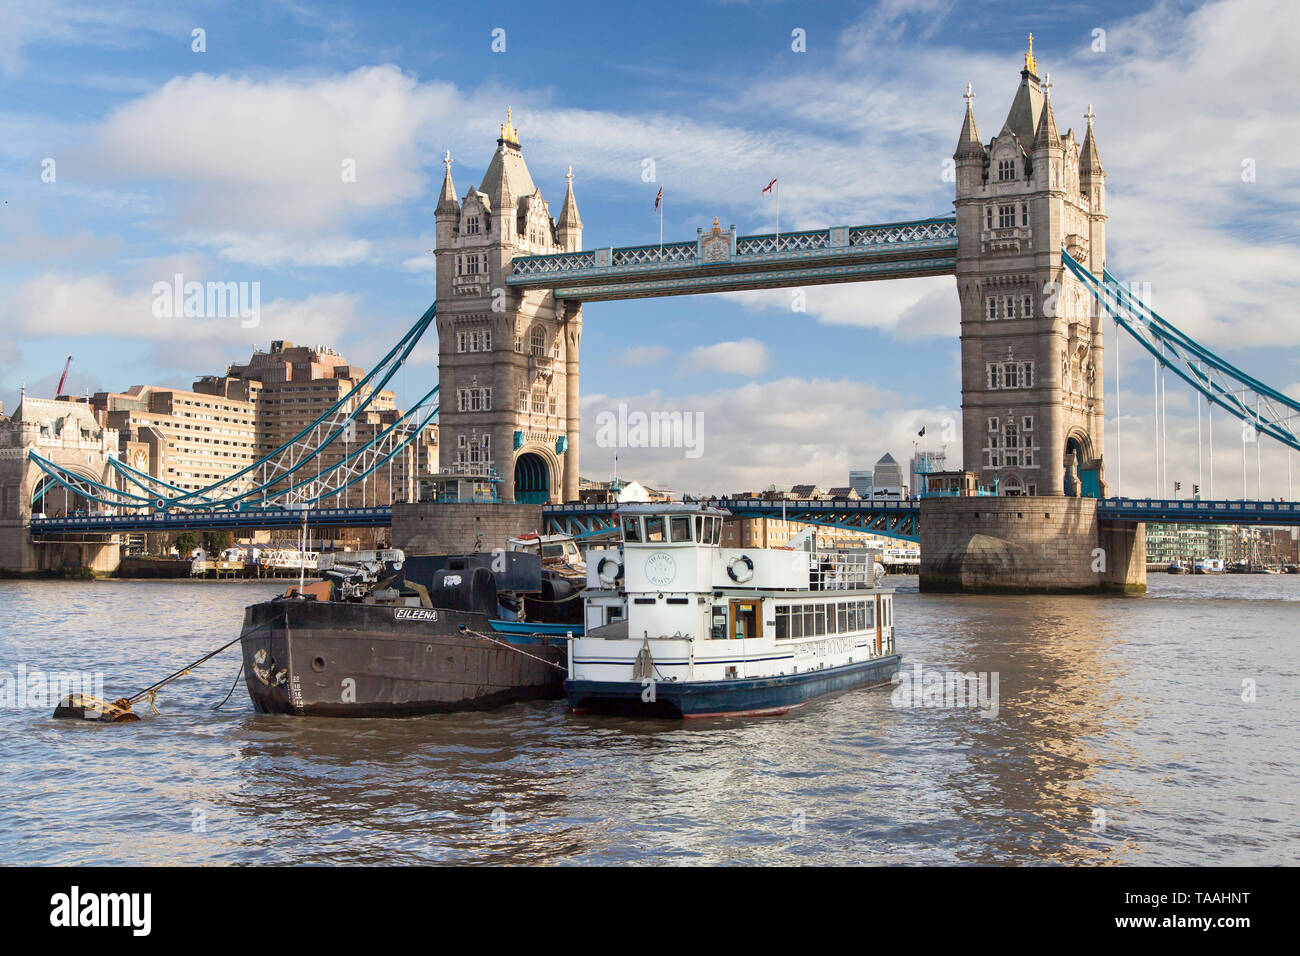 Old waste disposal barge on the Thames, London, United Kingdom. Stock Photo